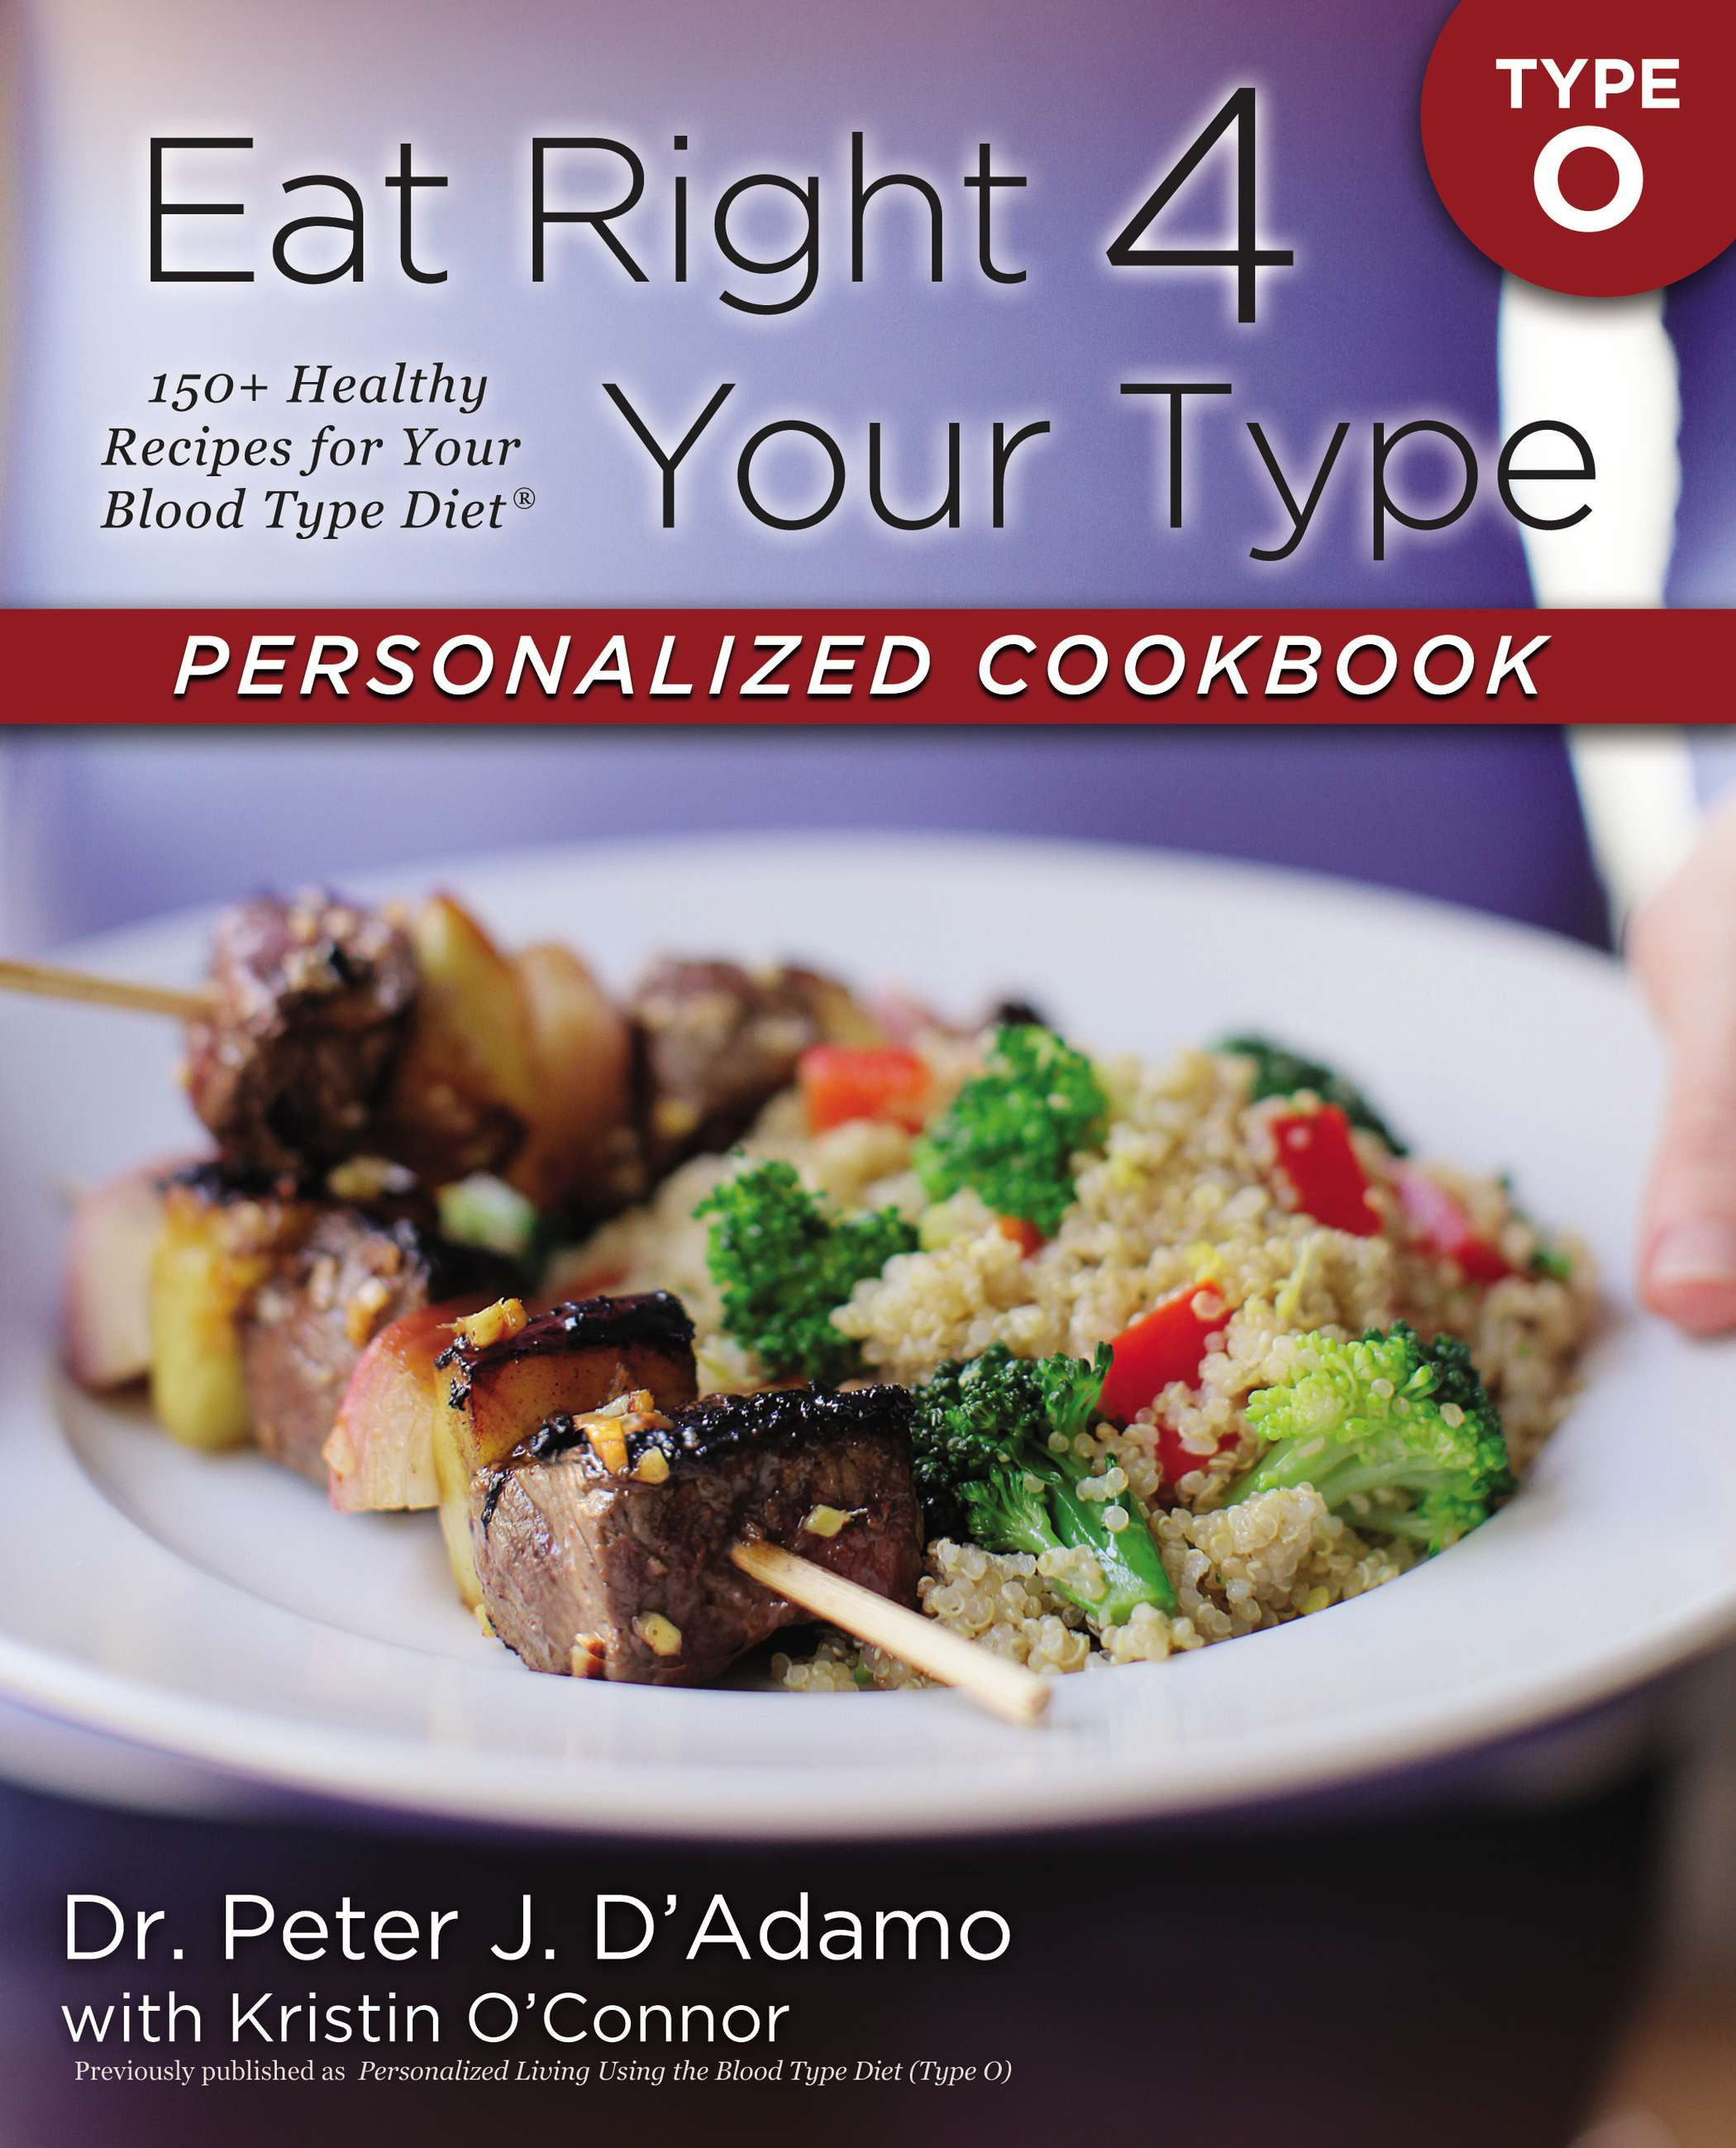 Eat right 4 your type personalized cookbook type o 150 healthy eat right 4 your type personalized cookbook type o 150 healthy recipes for your blood type diet walmart fandeluxe Images